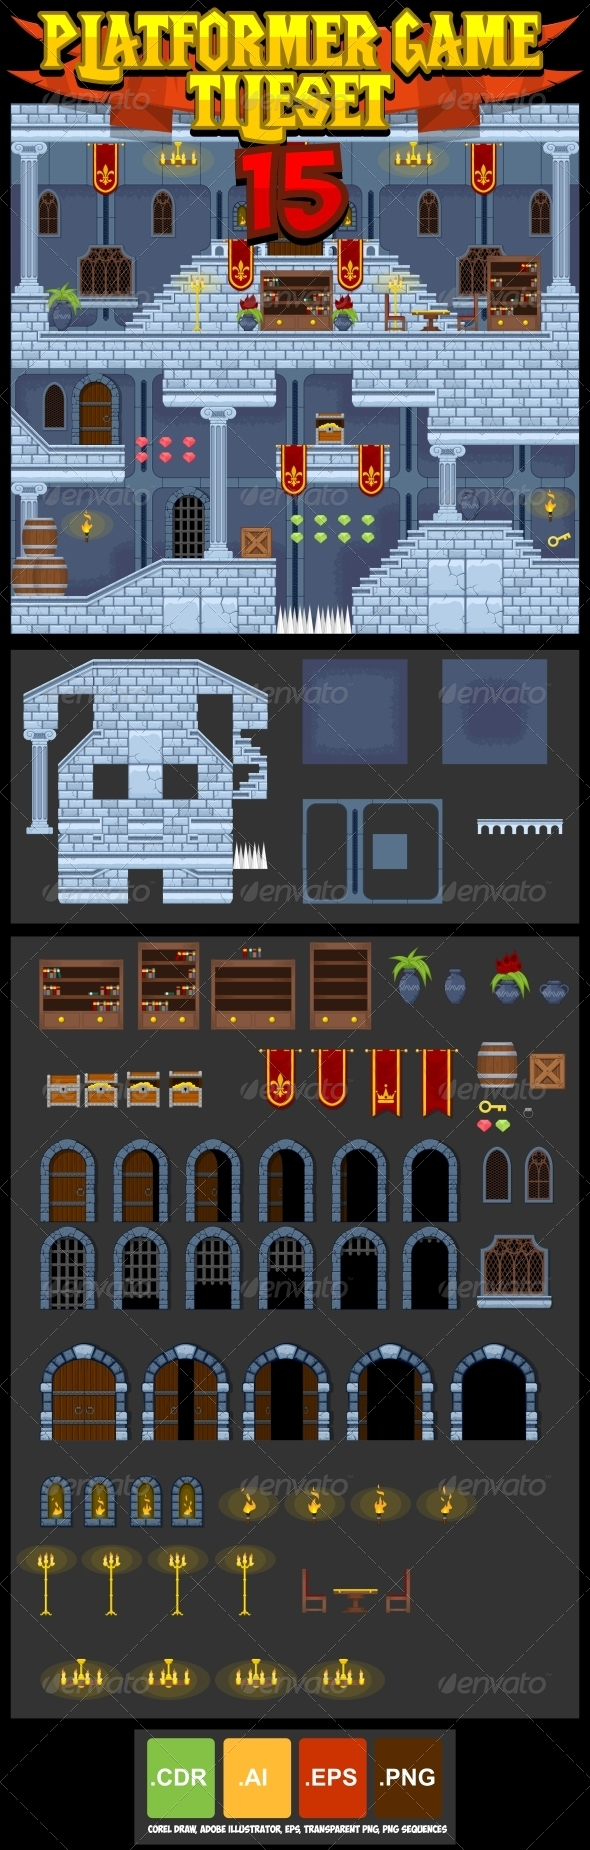 GraphicRiver Platformer Game Tile Set 15 8756461